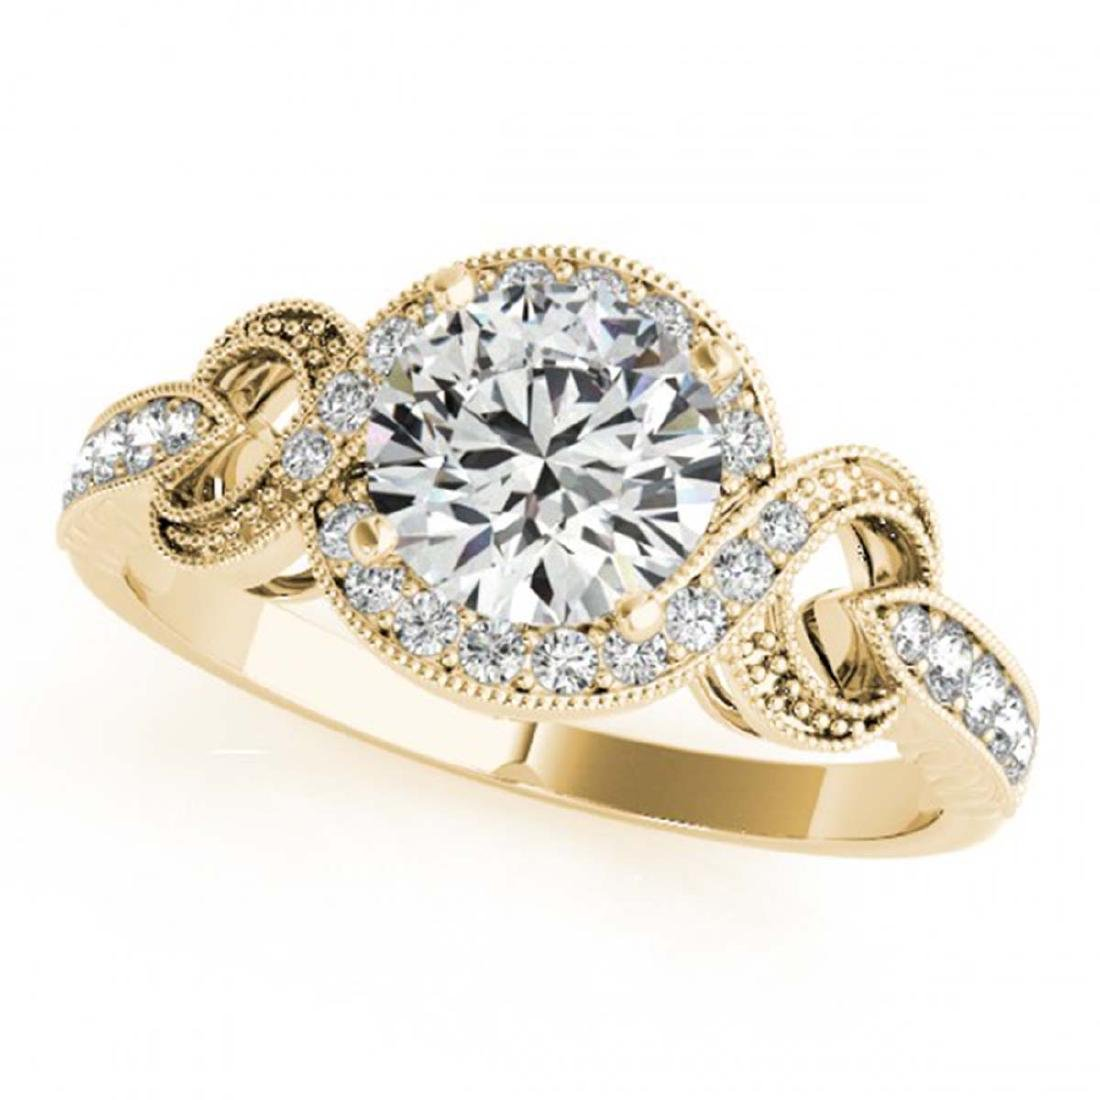 1.33 ctw VS/SI Diamond Halo Ring 18K Yellow Gold - - 2